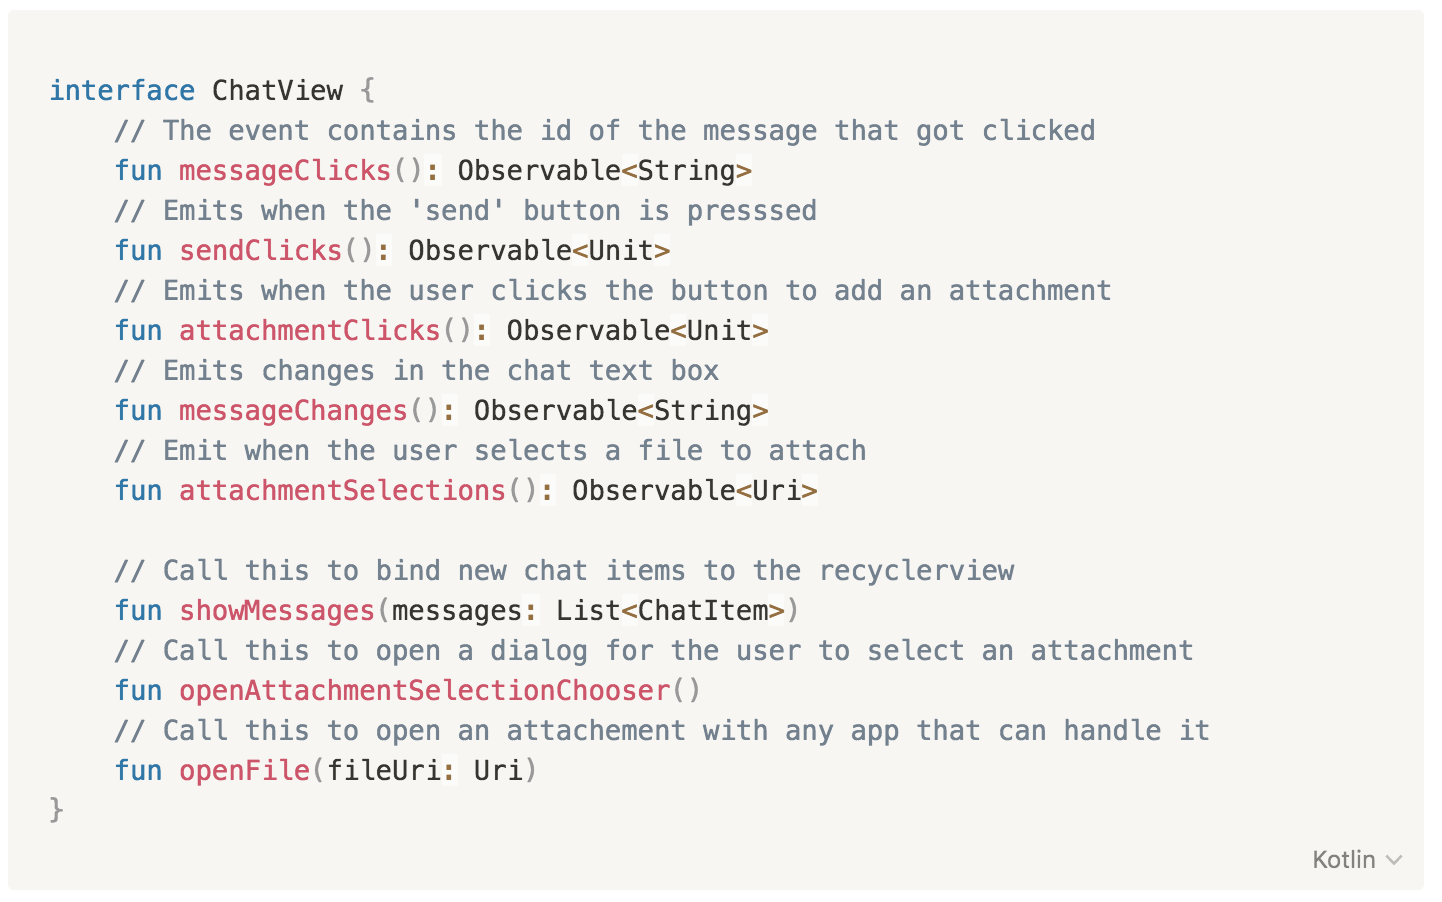 interface ChatView {       // The event contains the id of the message that got clicked       fun messageClicks(): Observable<String>       // Emits when the 'send' button is presssed           fun sendClicks(): Observable<Unit>       // Emits when the user clicks the button to add an attachment                   fun attachmentClicks(): Observable<Unit>       // Emits changes in the chat text box           fun messageChanges(): Observable<String>       // Emit when the user selects a file to attach           fun attachmentSelections(): Observable<Uri>                  // Call this to bind new chat items to the recyclerview       fun showMessages(messages: List<ChatItem>)           // Call this to open a dialog for the user to select an attachment       fun openAttachmentSelectionChooser()       // Call this to open an attachement with any app that can handle it               fun openFile(fileUri: Uri)                         }